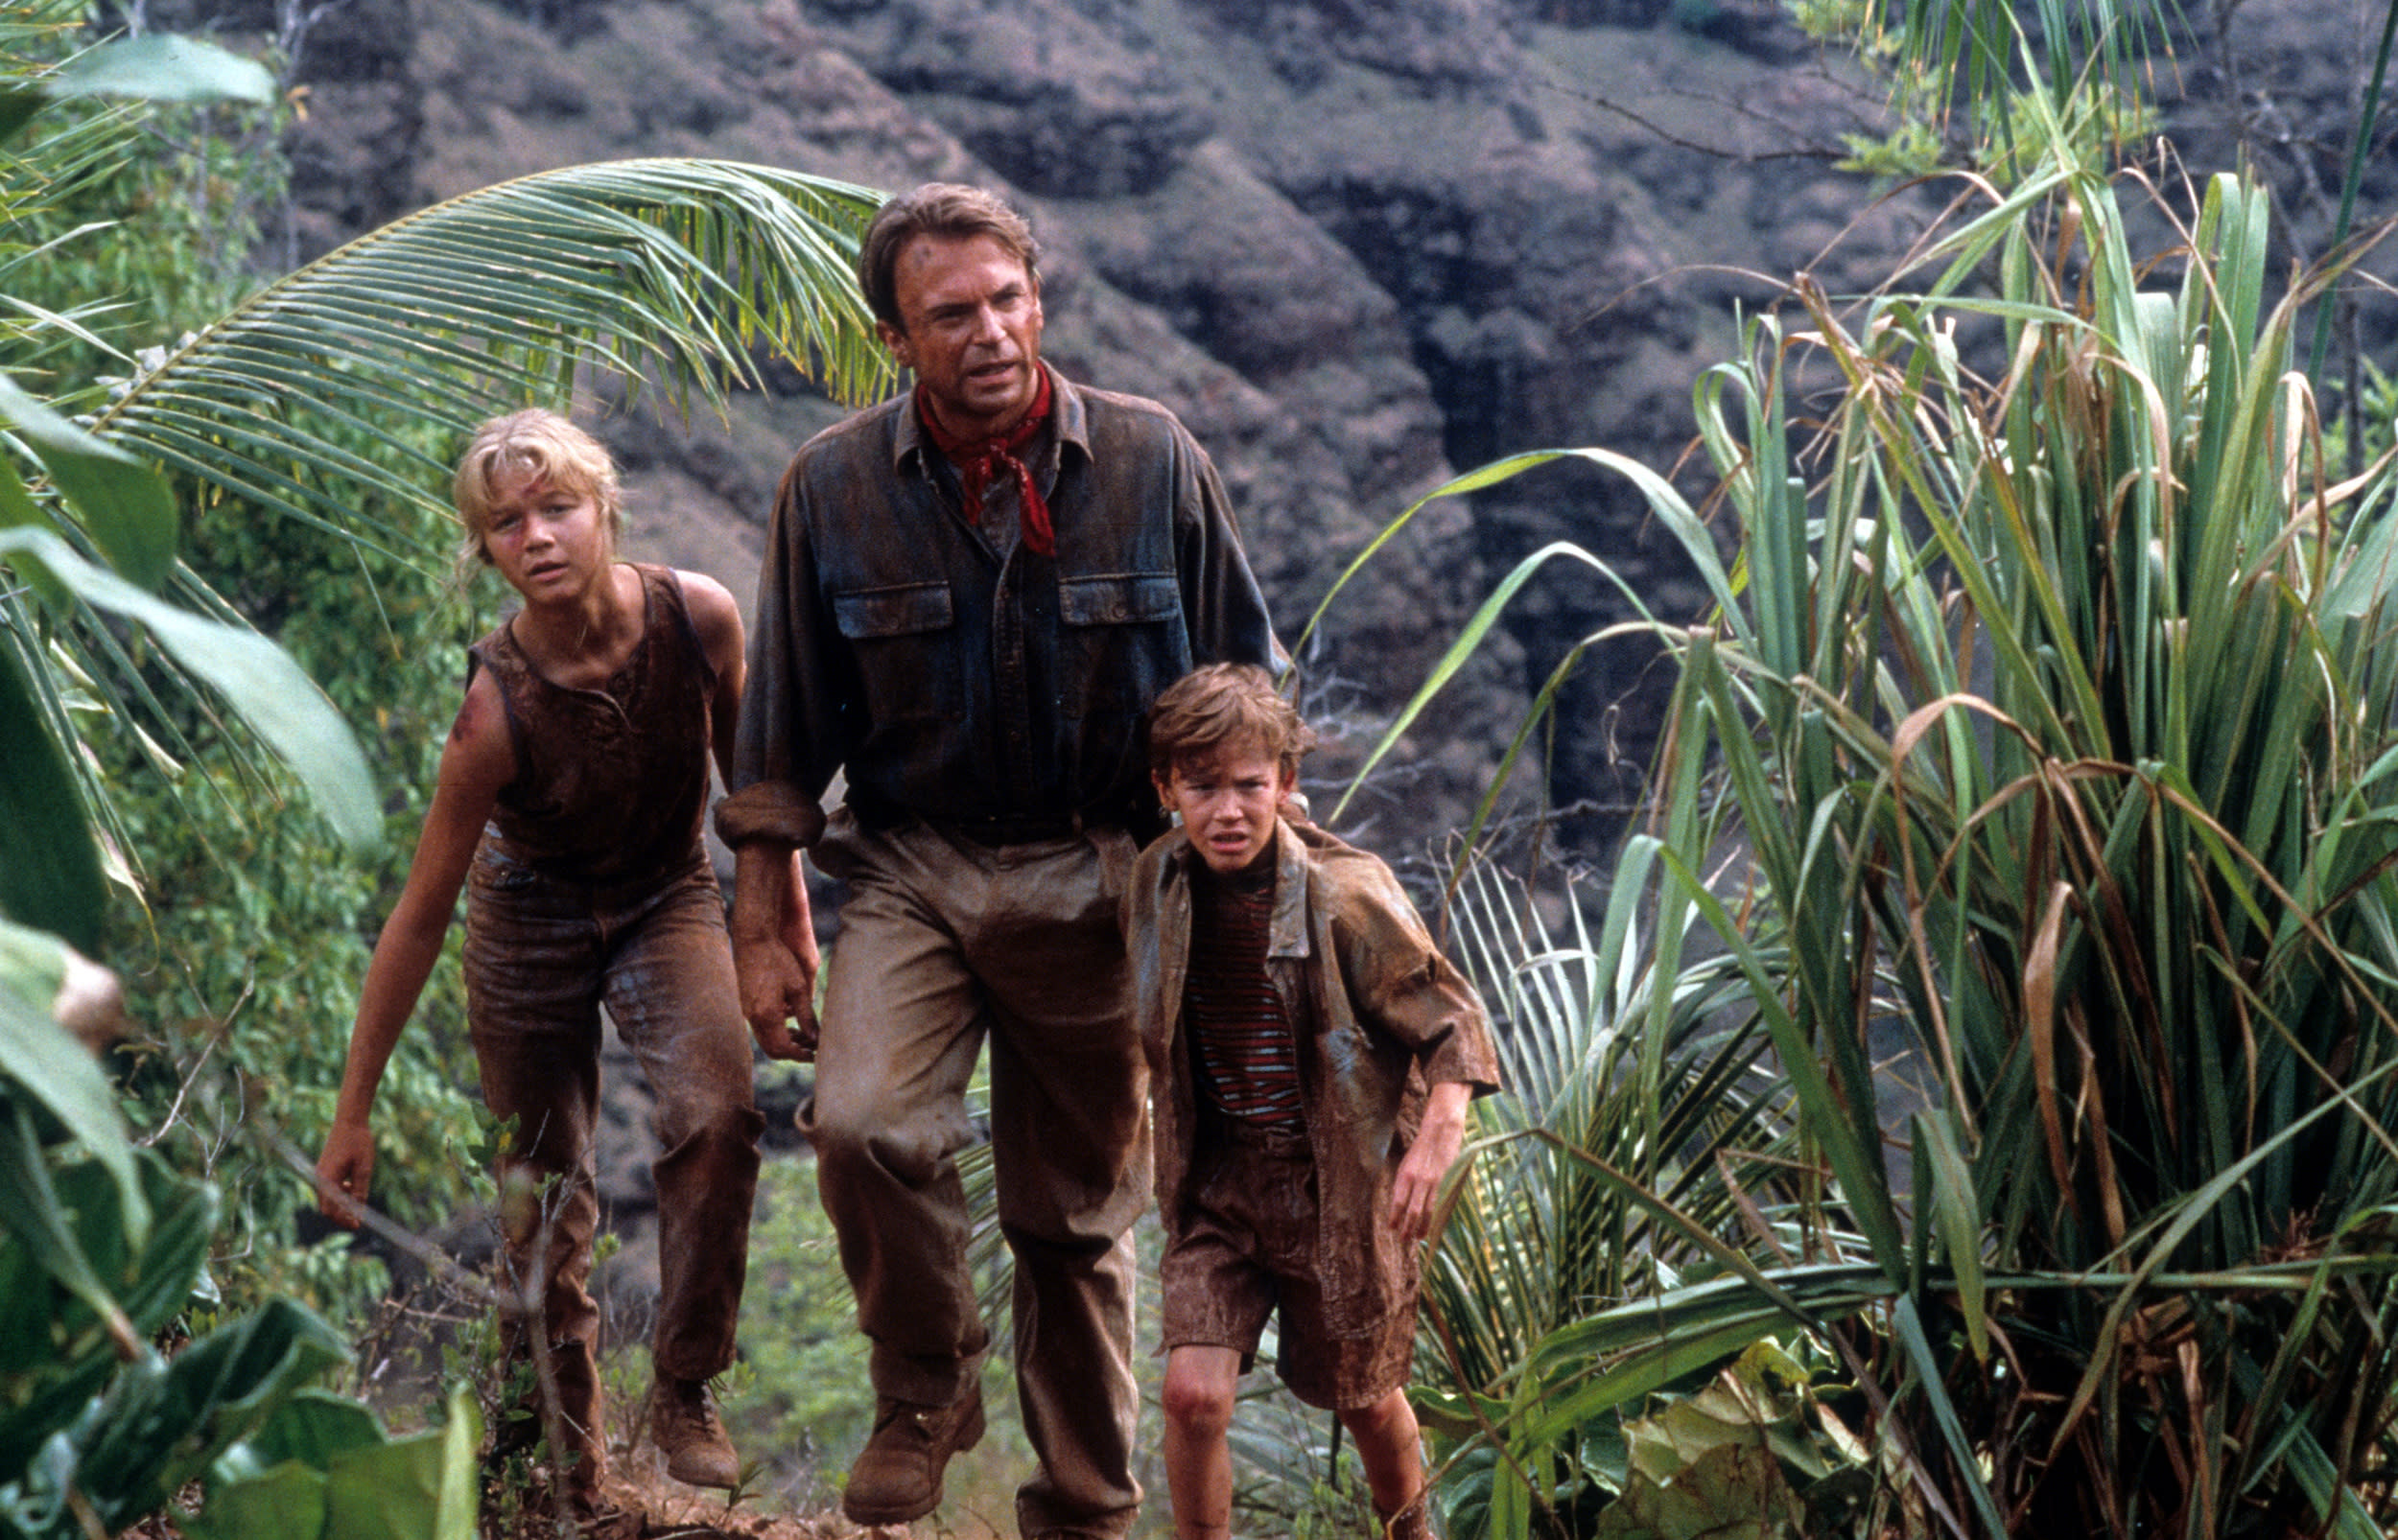 Ariana Richards walks with Sam Neill and Joseph Mazzello in a scene from the film 'Jurassic Park', 1993. (Photo by Universal/Getty Images)